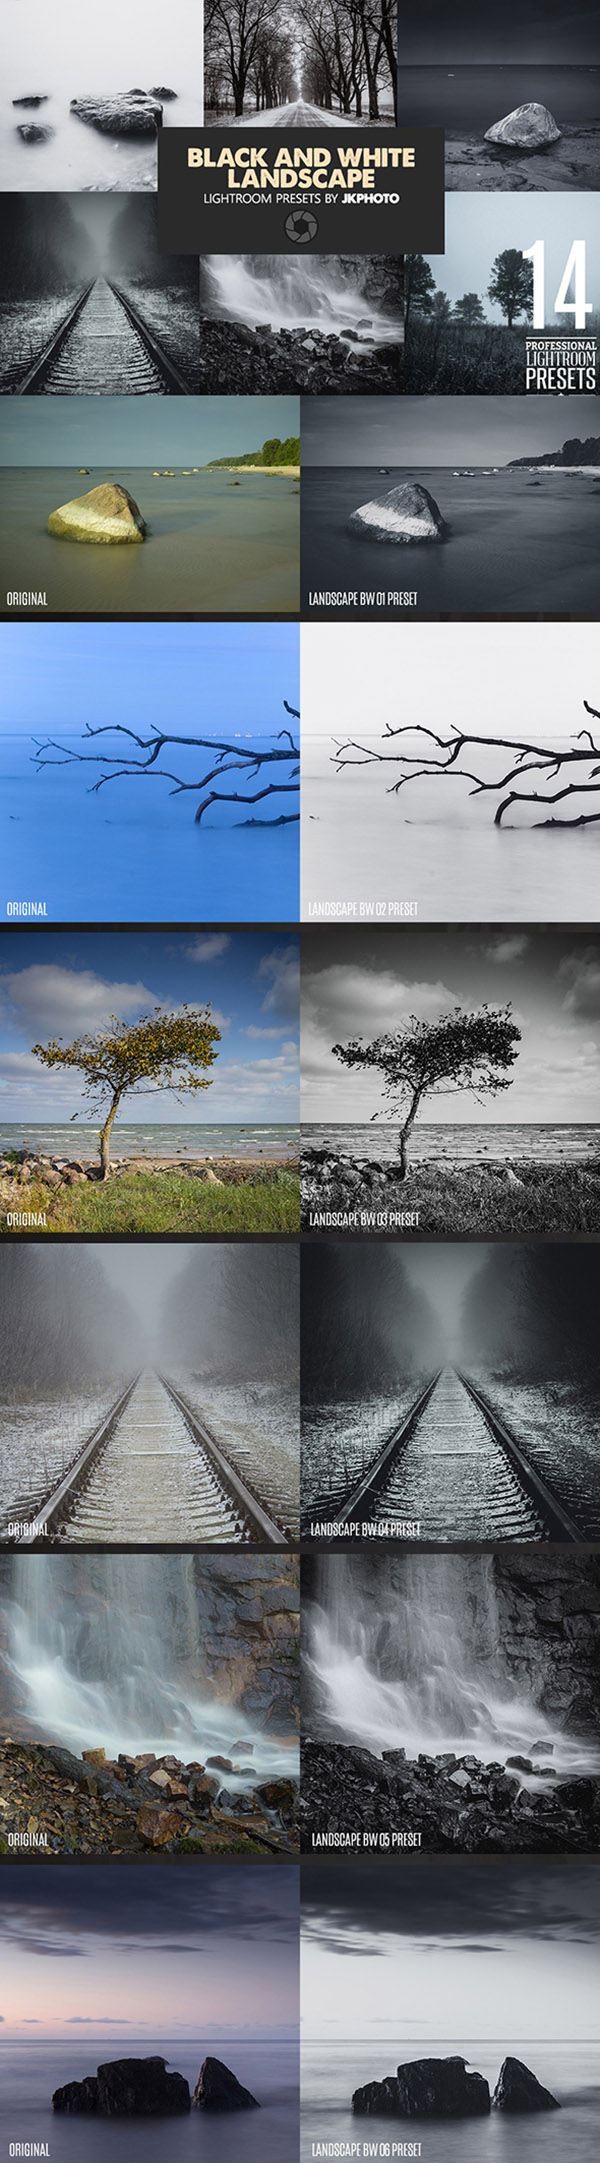 09 14 Black And White Landscape Lightroom Presets